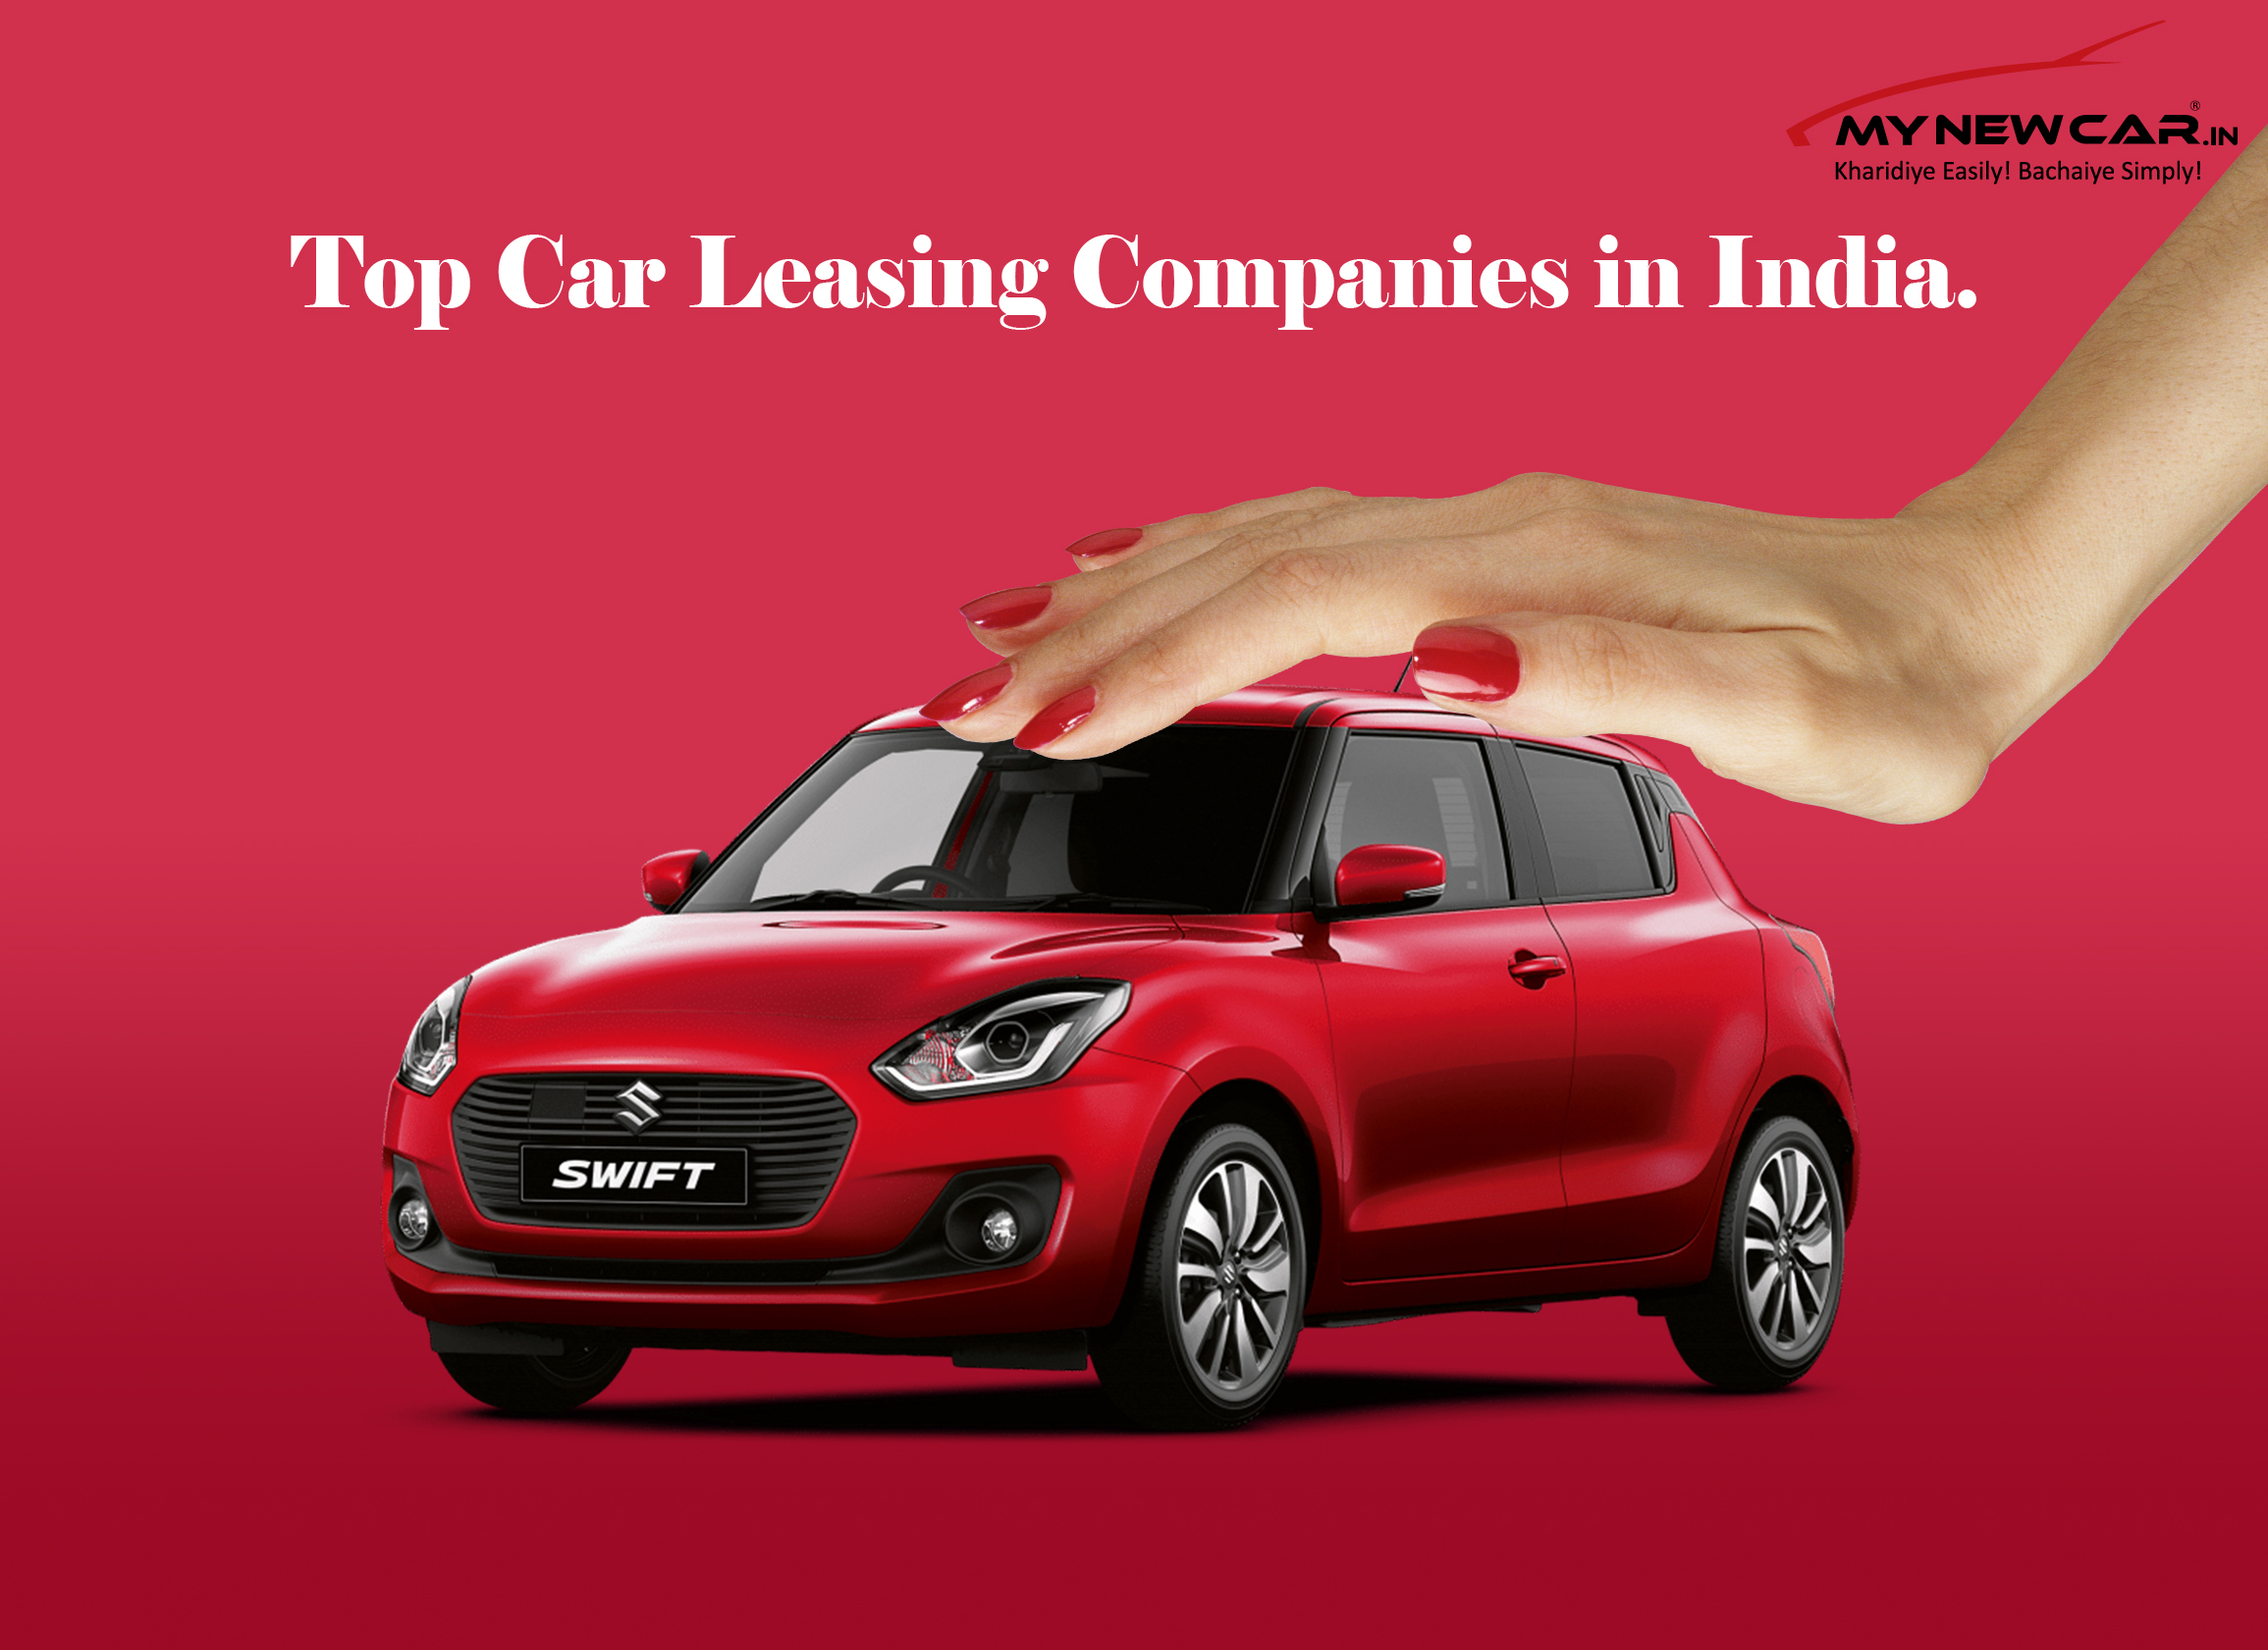 Best Top 5 Leasing Companies in India